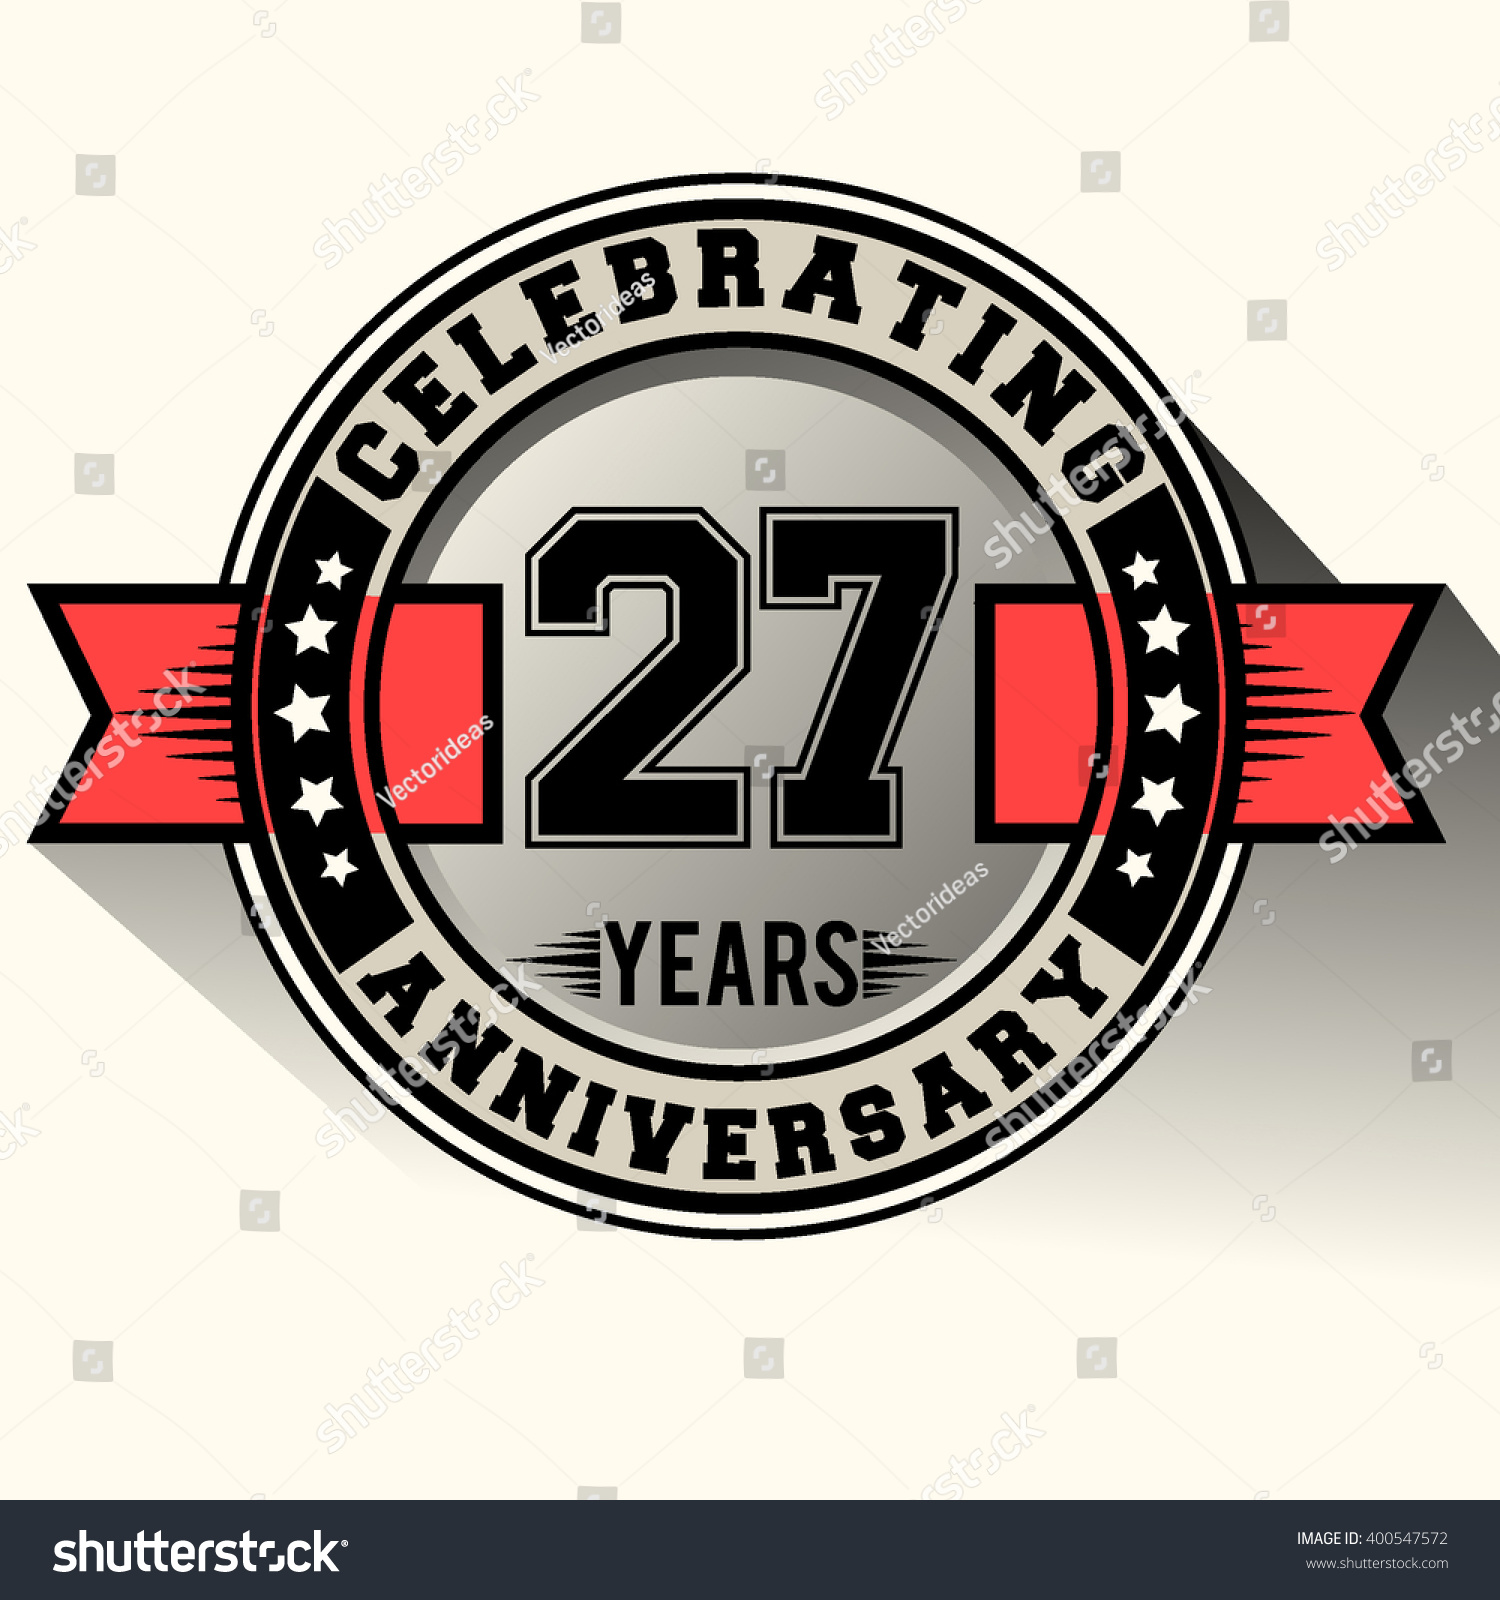 Celebrating 27 years anniversary logo vintage stock vector 400547572 celebrating 27 years anniversary logo vintage emblem with red ribbon retro vector design isolated on biocorpaavc Images